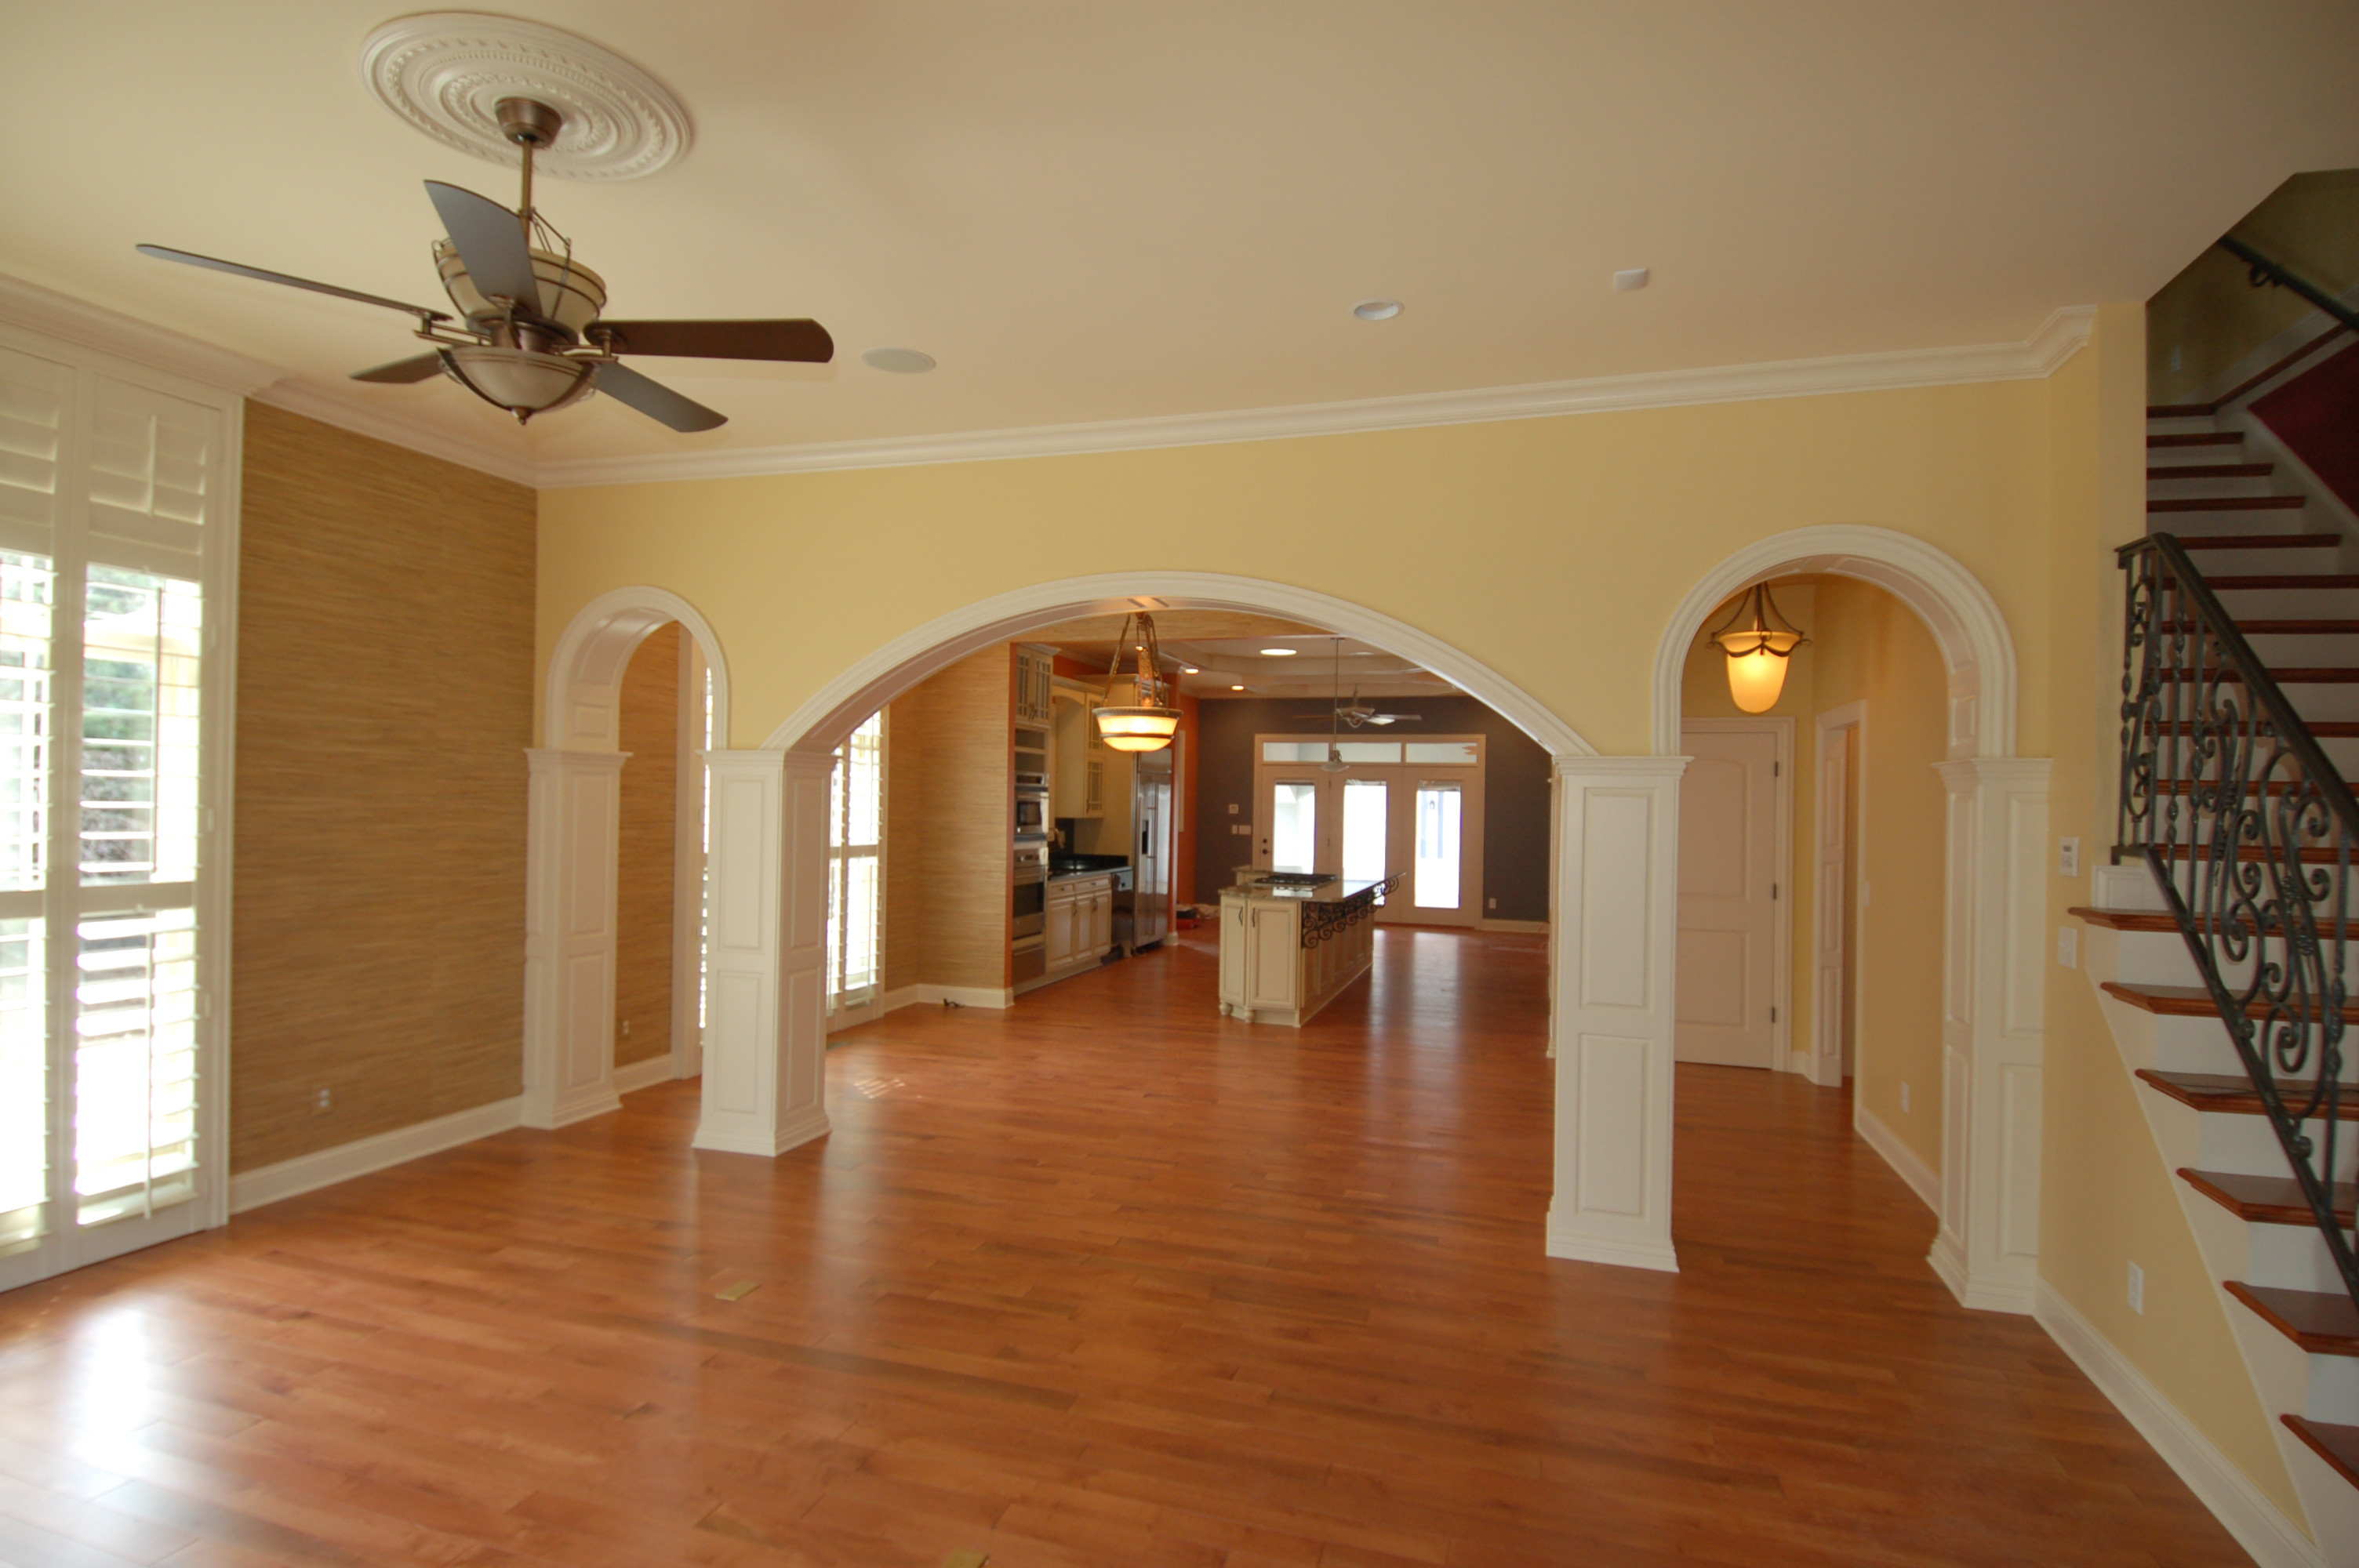 Best ideas about Interior Paint Colors . Save or Pin Light Brown Interior Paint Colors Now.